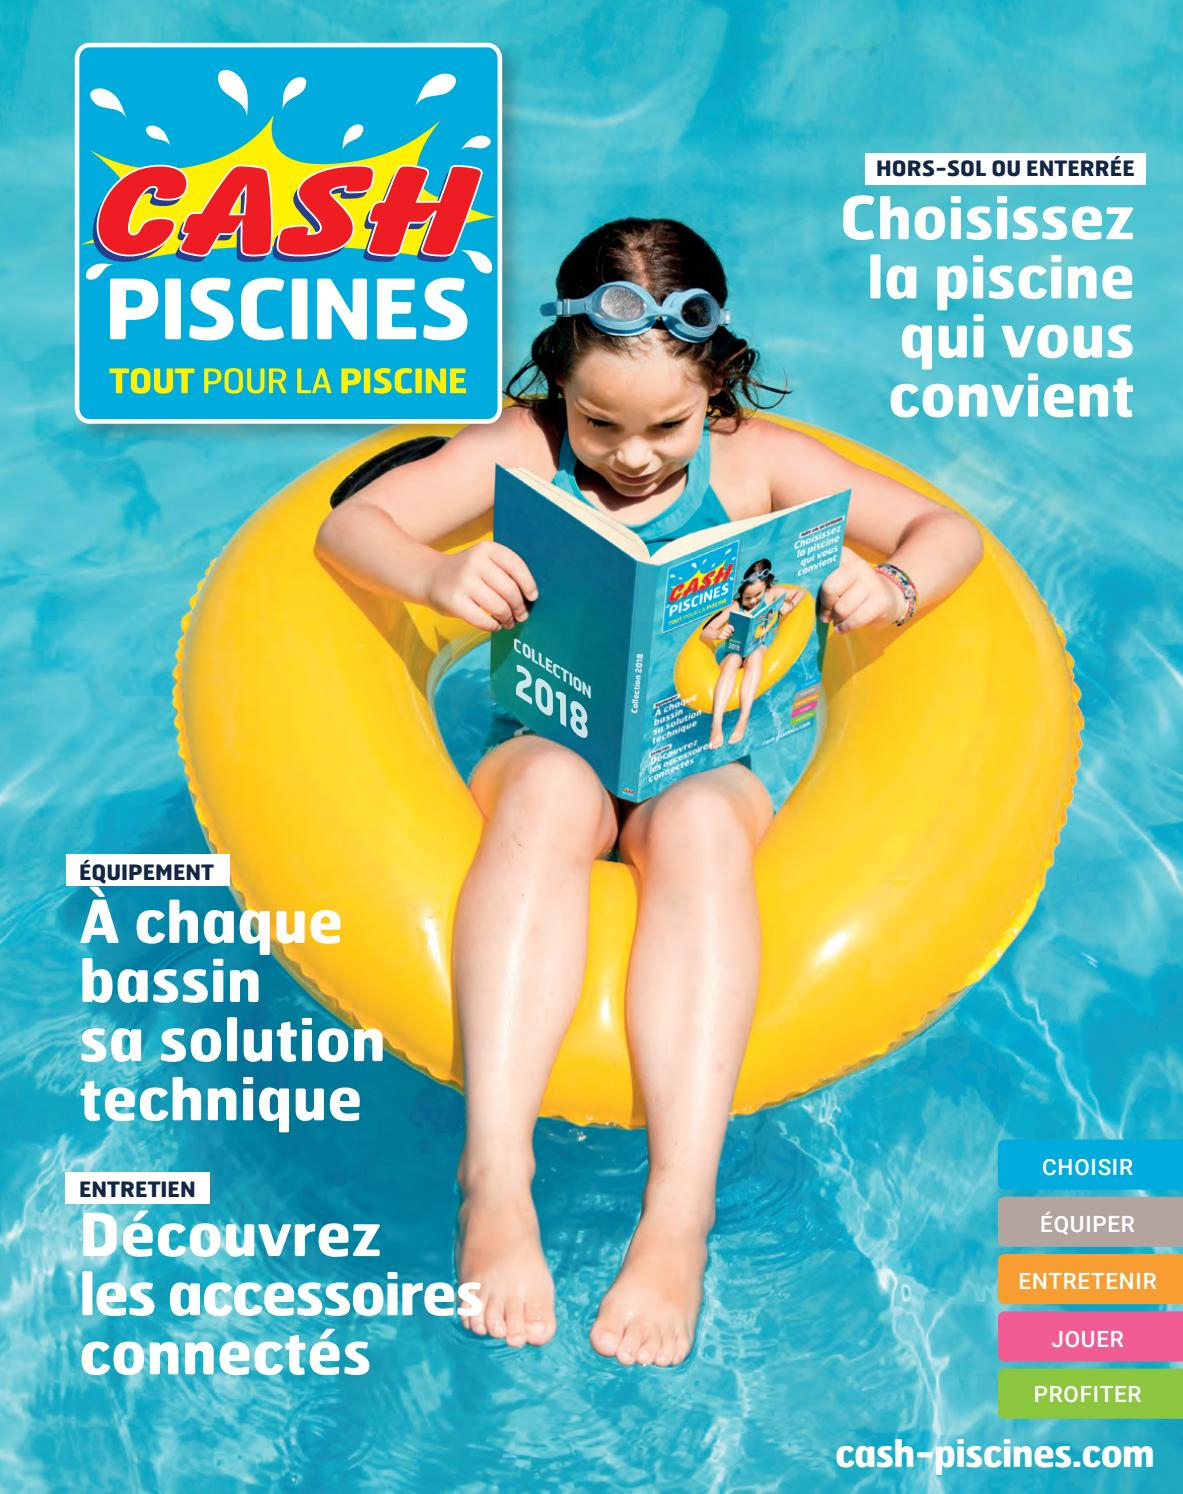 Catalogue Cash Piscine 2018 By Octave Octave - Issuu concernant Cash Piscine Le Cres